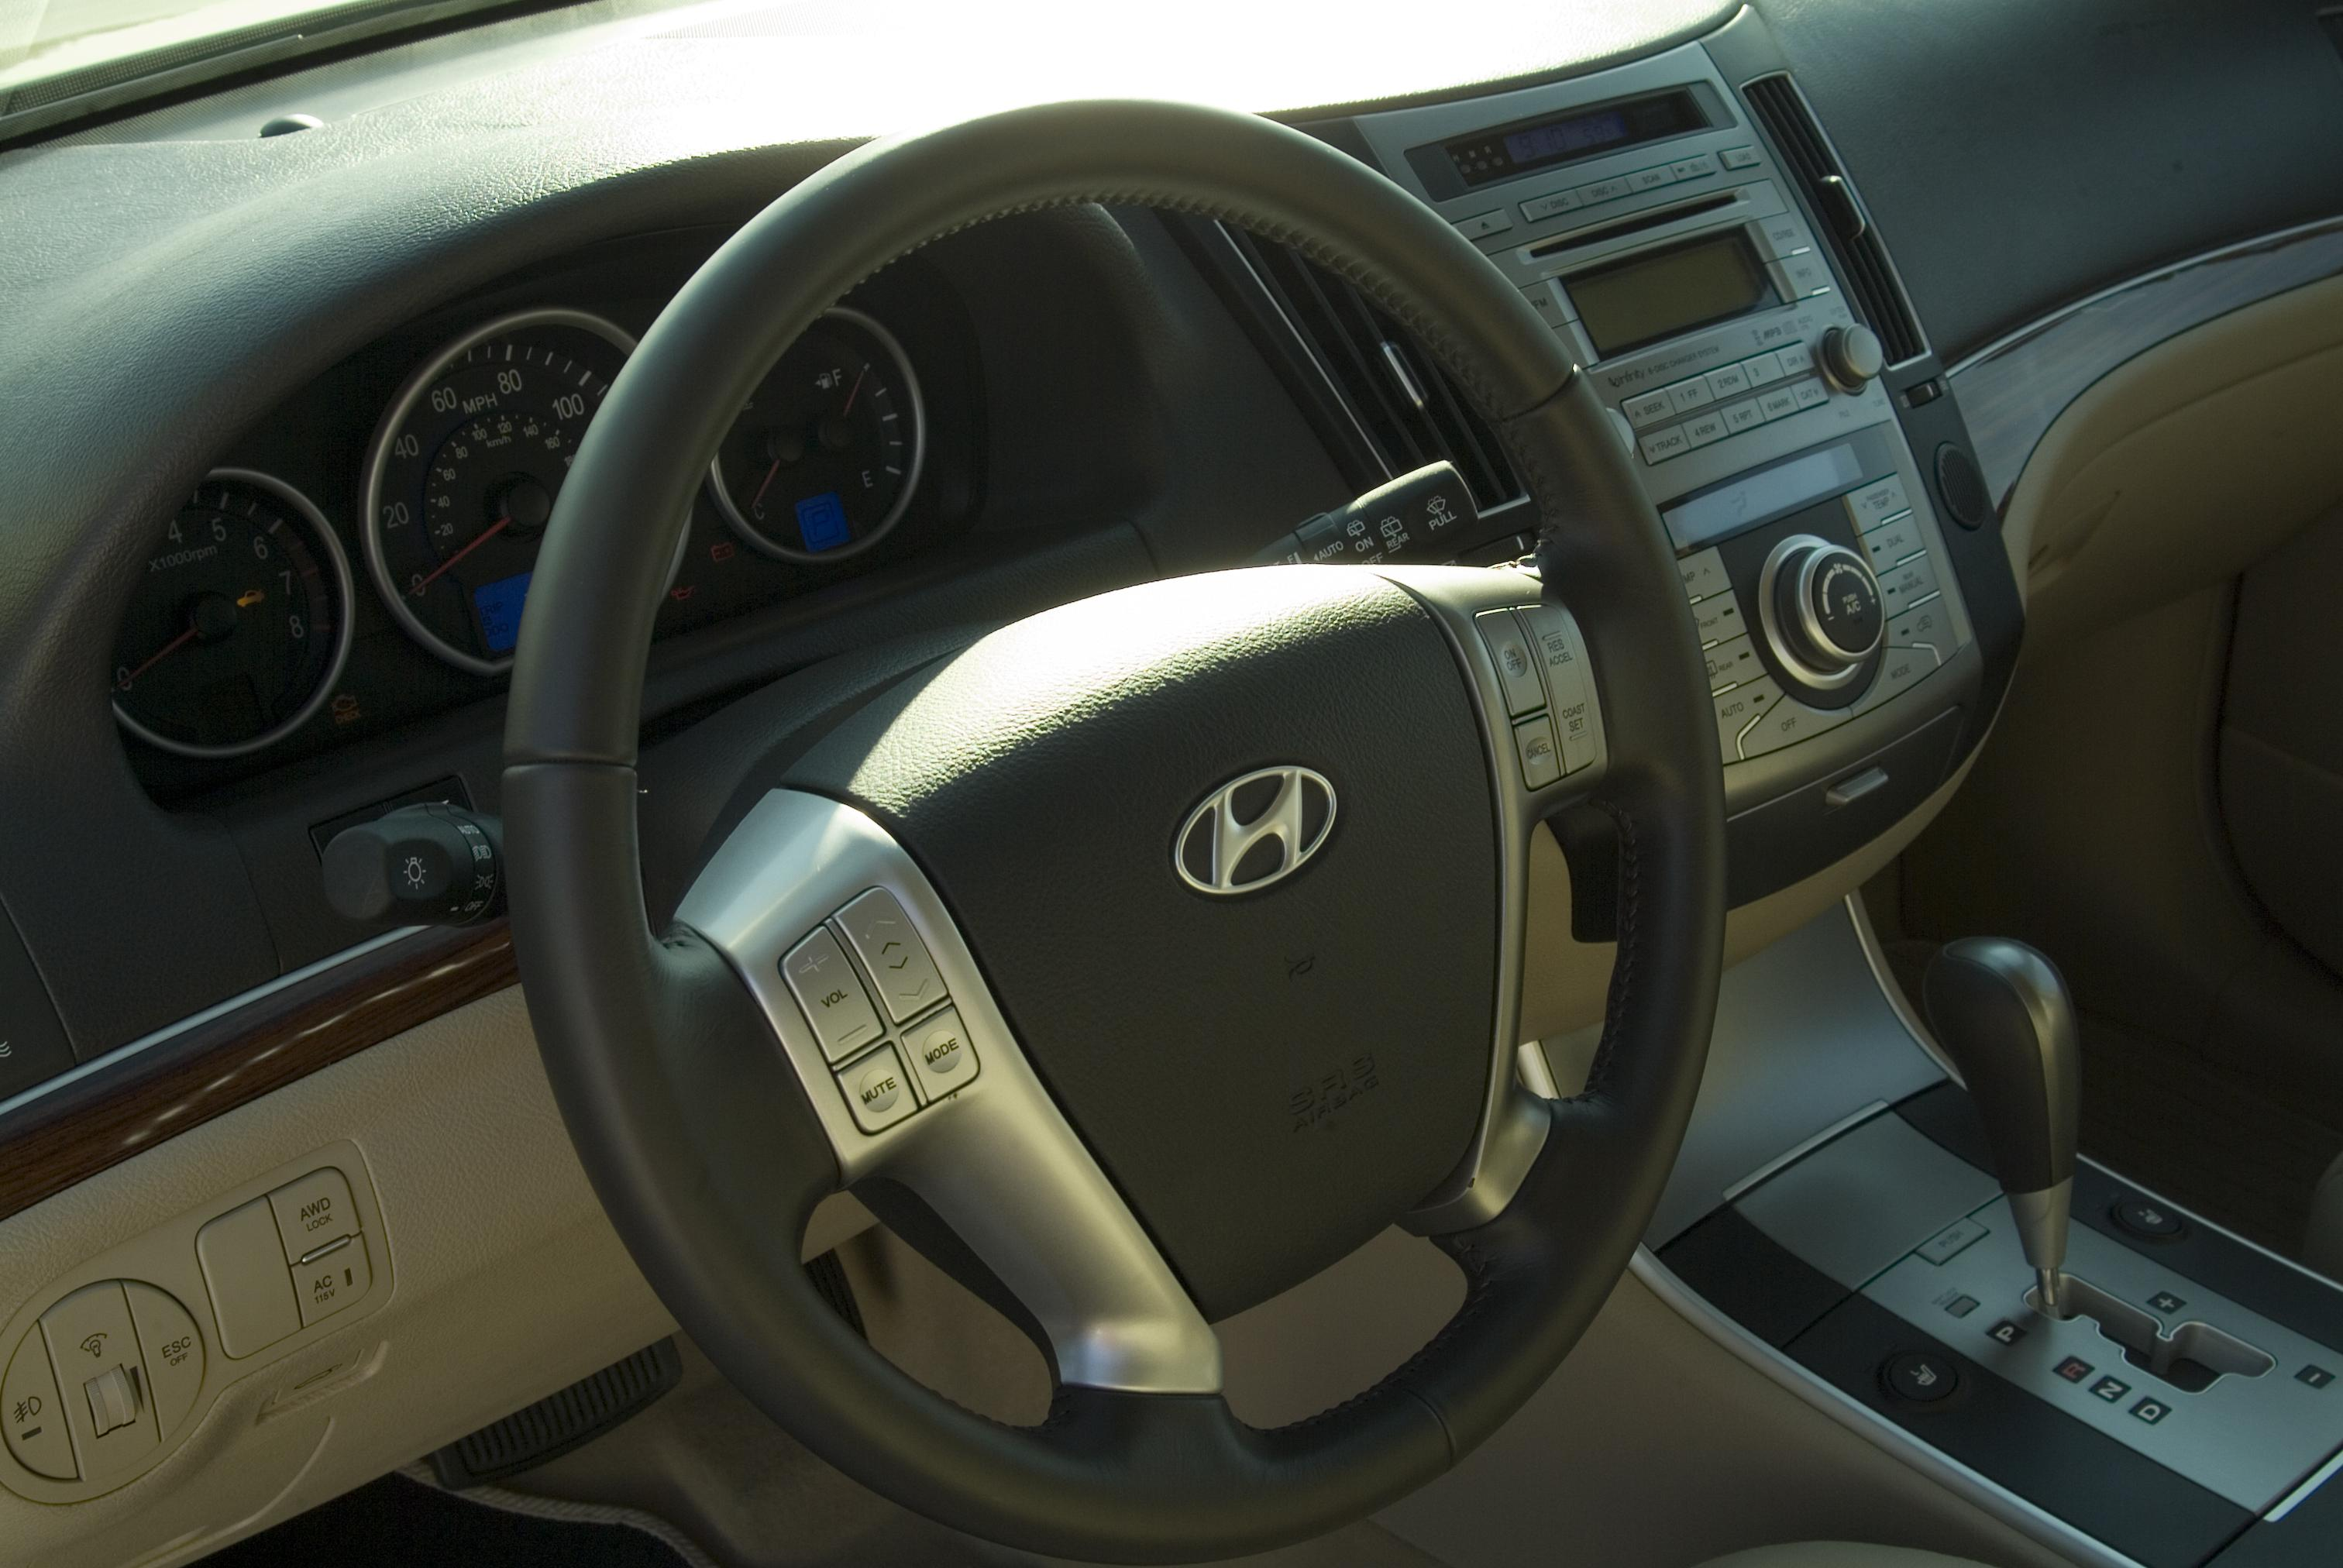 2008 hyundai veracruz review gallery 125631 top speed. Black Bedroom Furniture Sets. Home Design Ideas